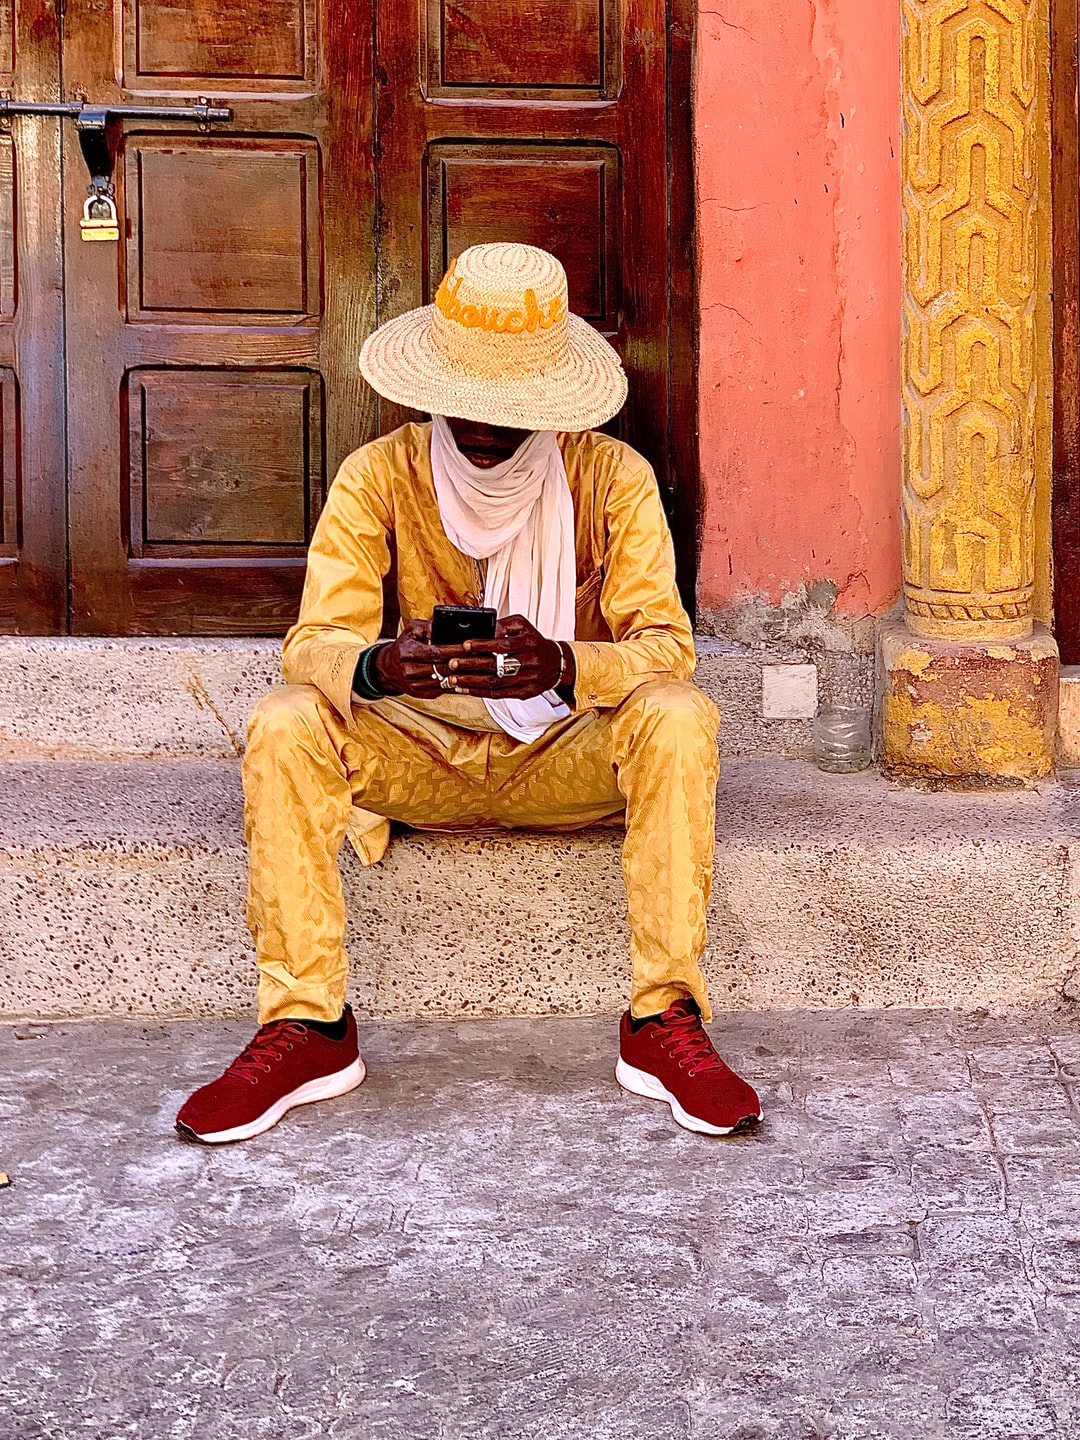 Golden Guy of Marrakech sitting in front of an old ancient wooden door or portal of a Riad in the Médina.